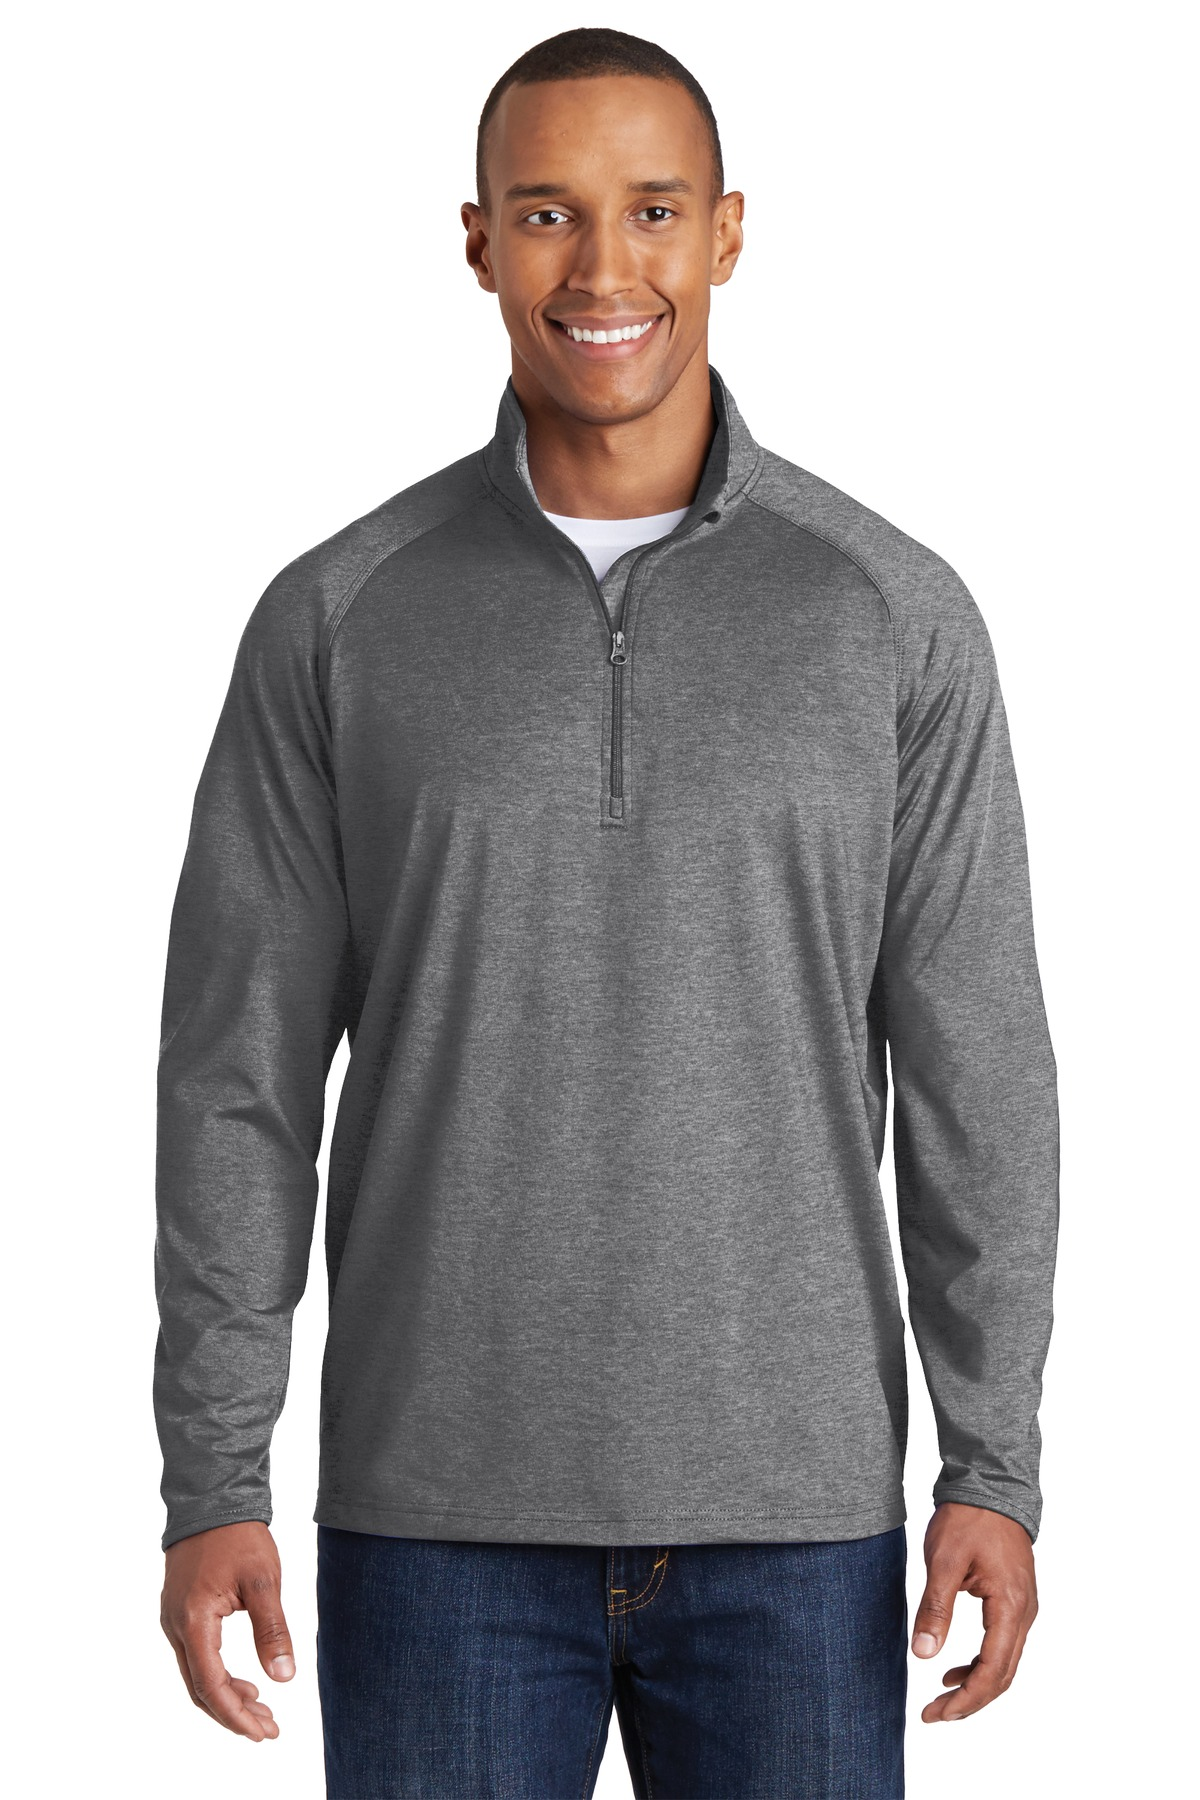 Sport-Tek ®  Sport-Wick ®  Stretch 1/2-Zip Pullover. ST850 - Charcoal Grey Heather